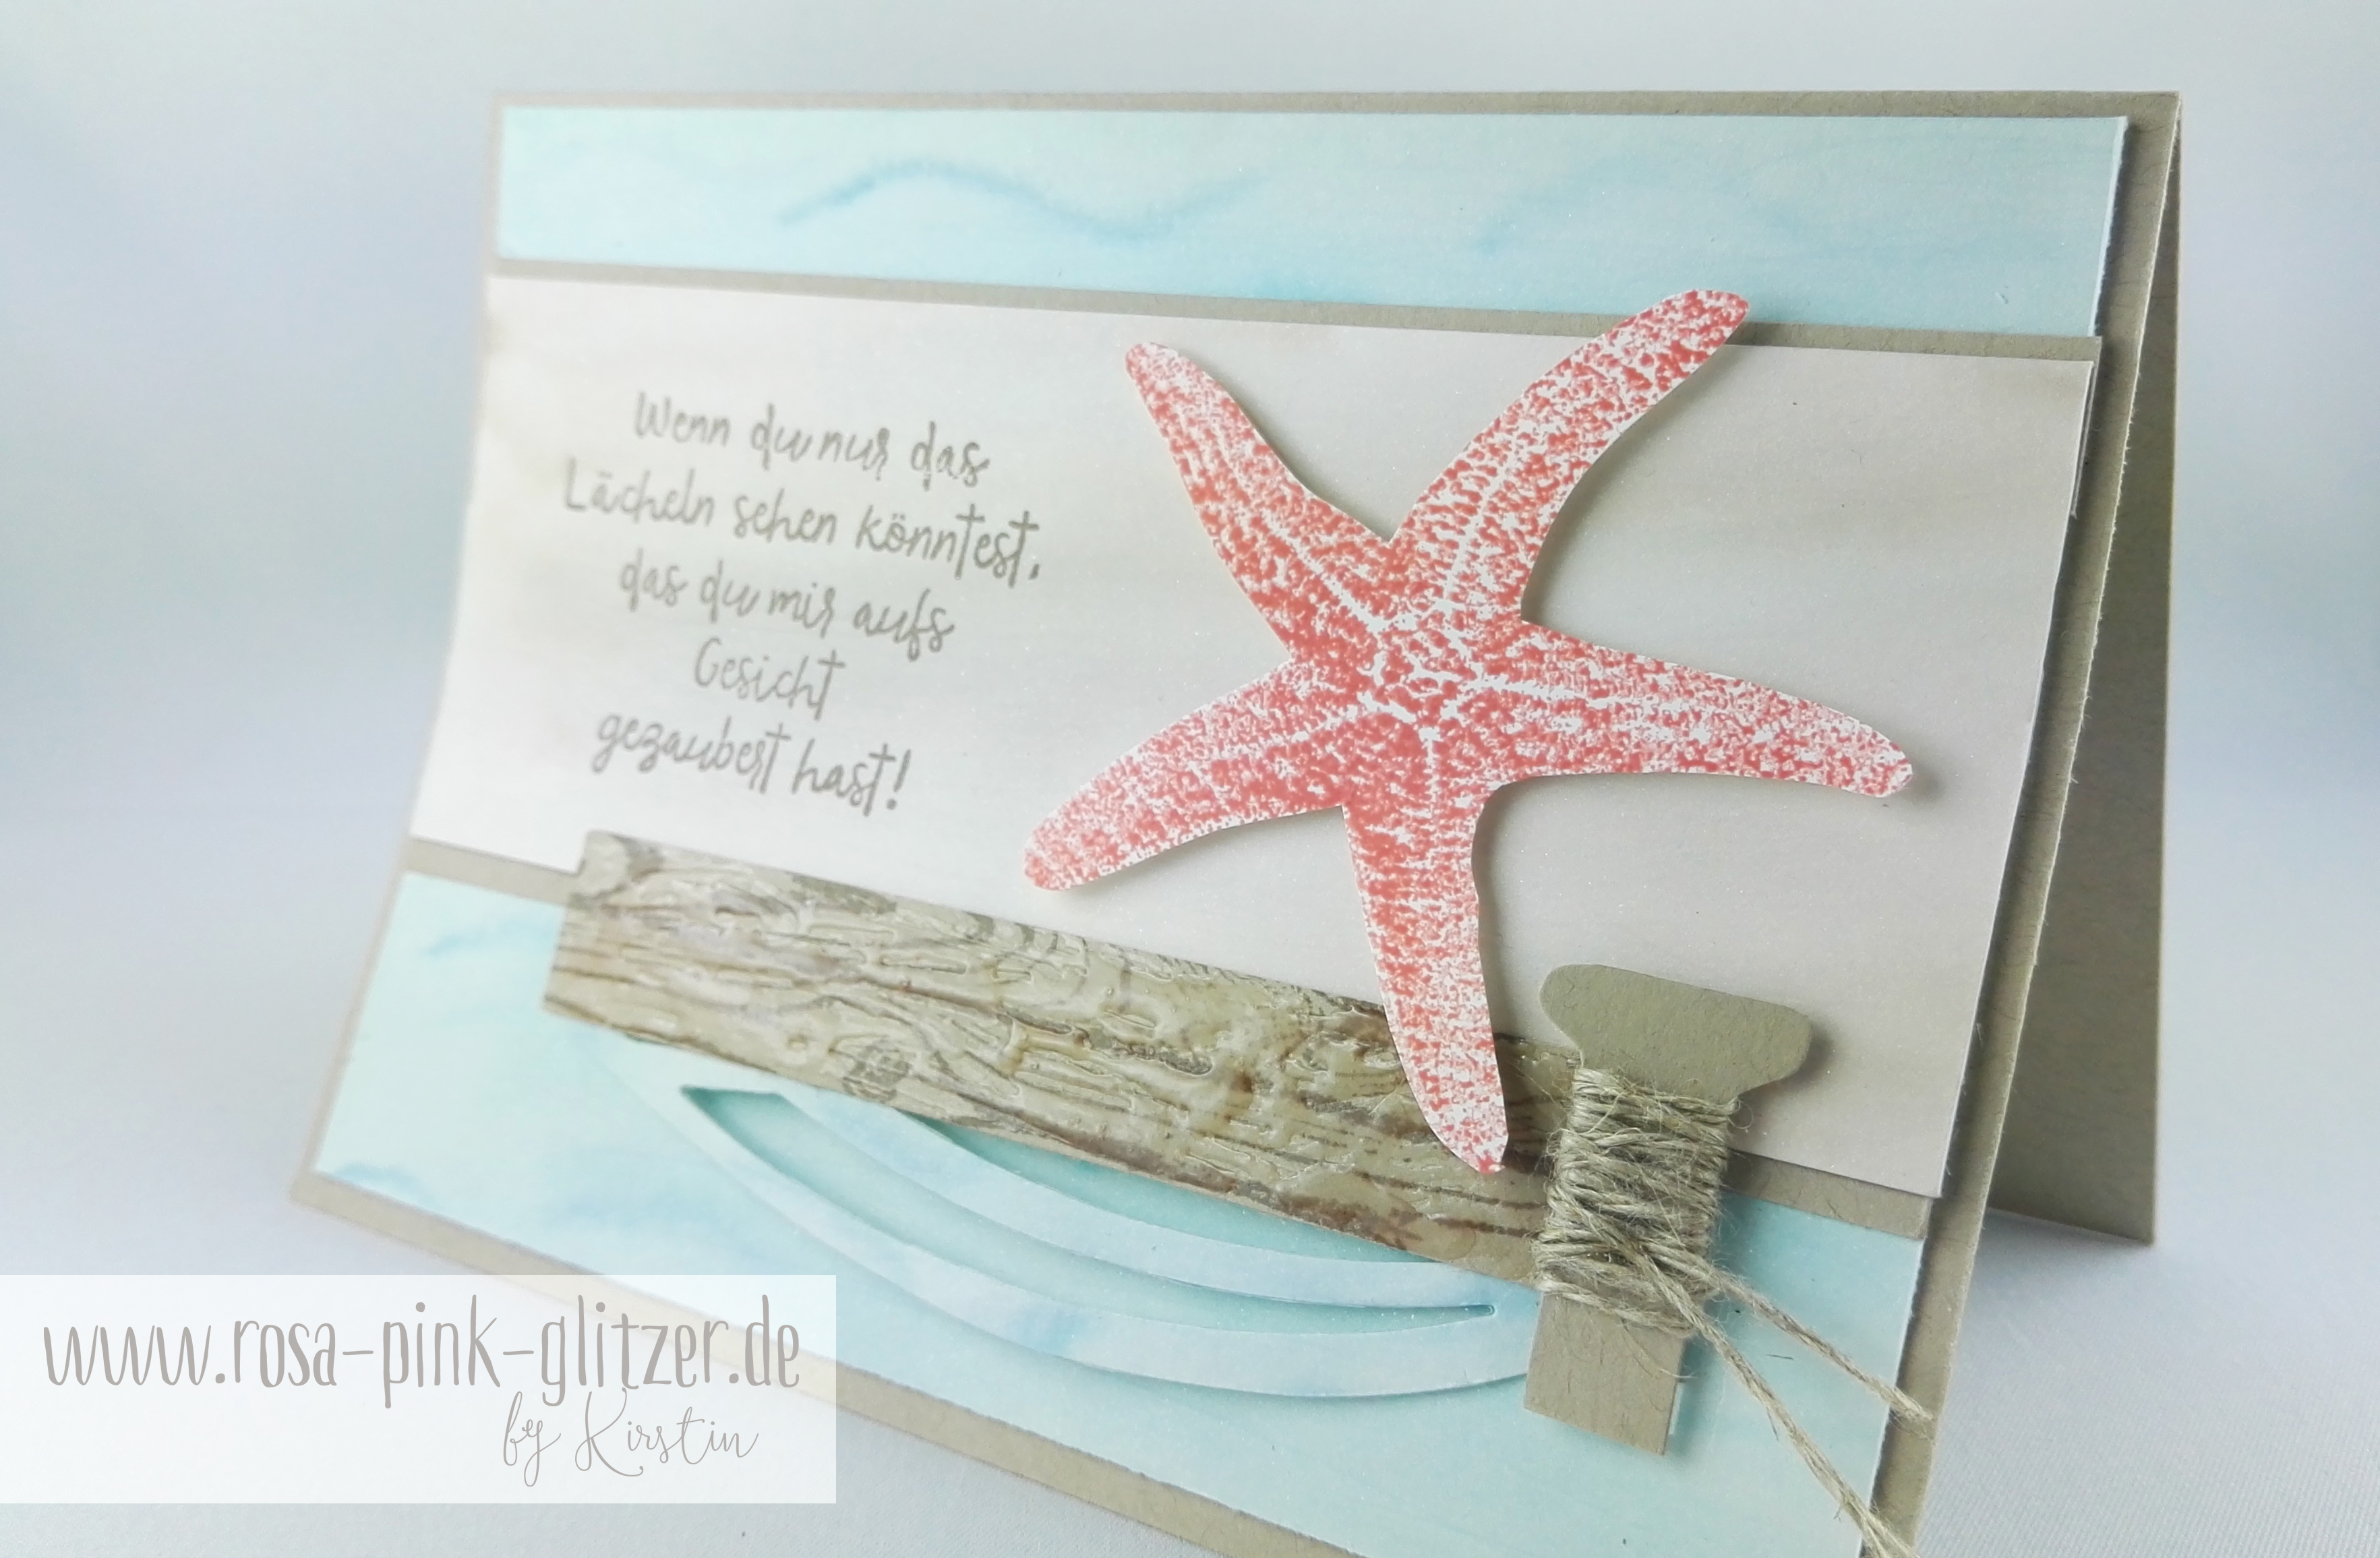 Stampin up Landshut - Picture Perfect Seestern 4